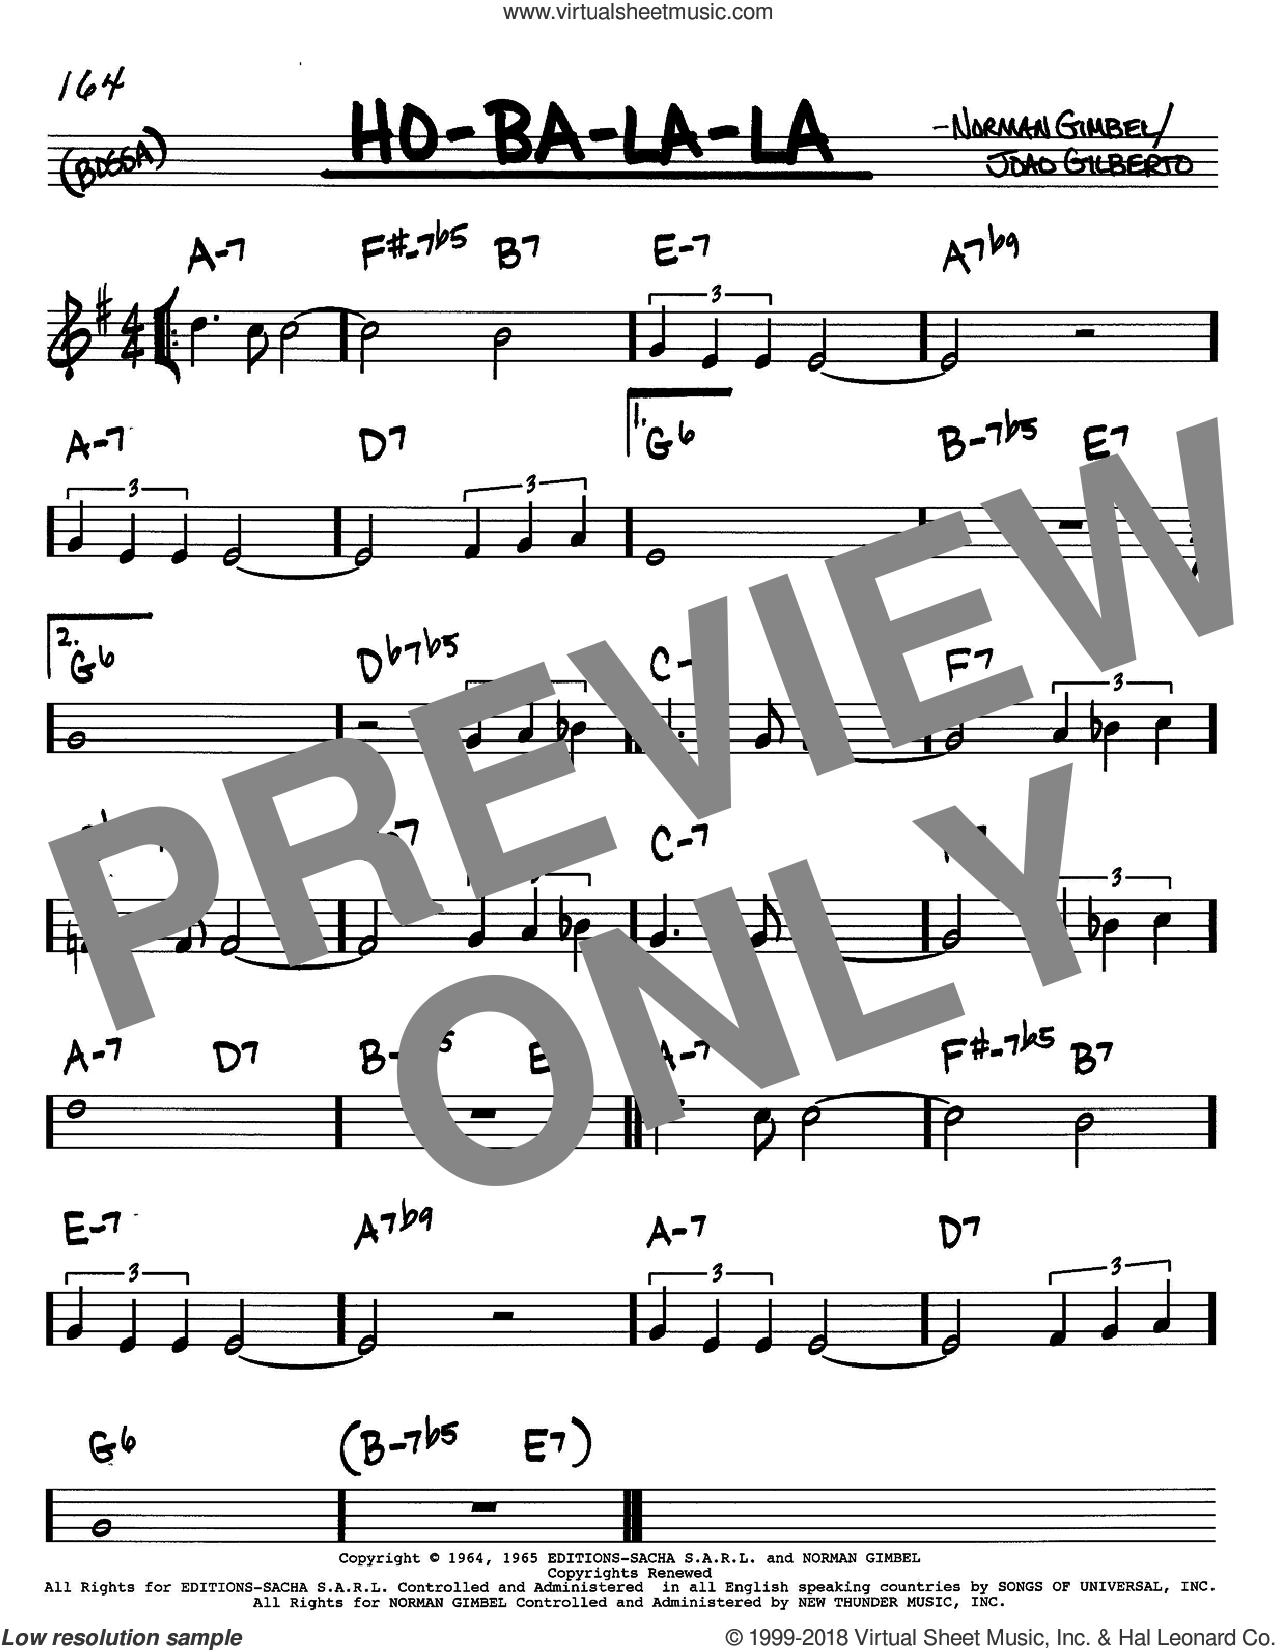 Ho-Ba-La-La sheet music for voice and other instruments (C) by Joao Gilberto